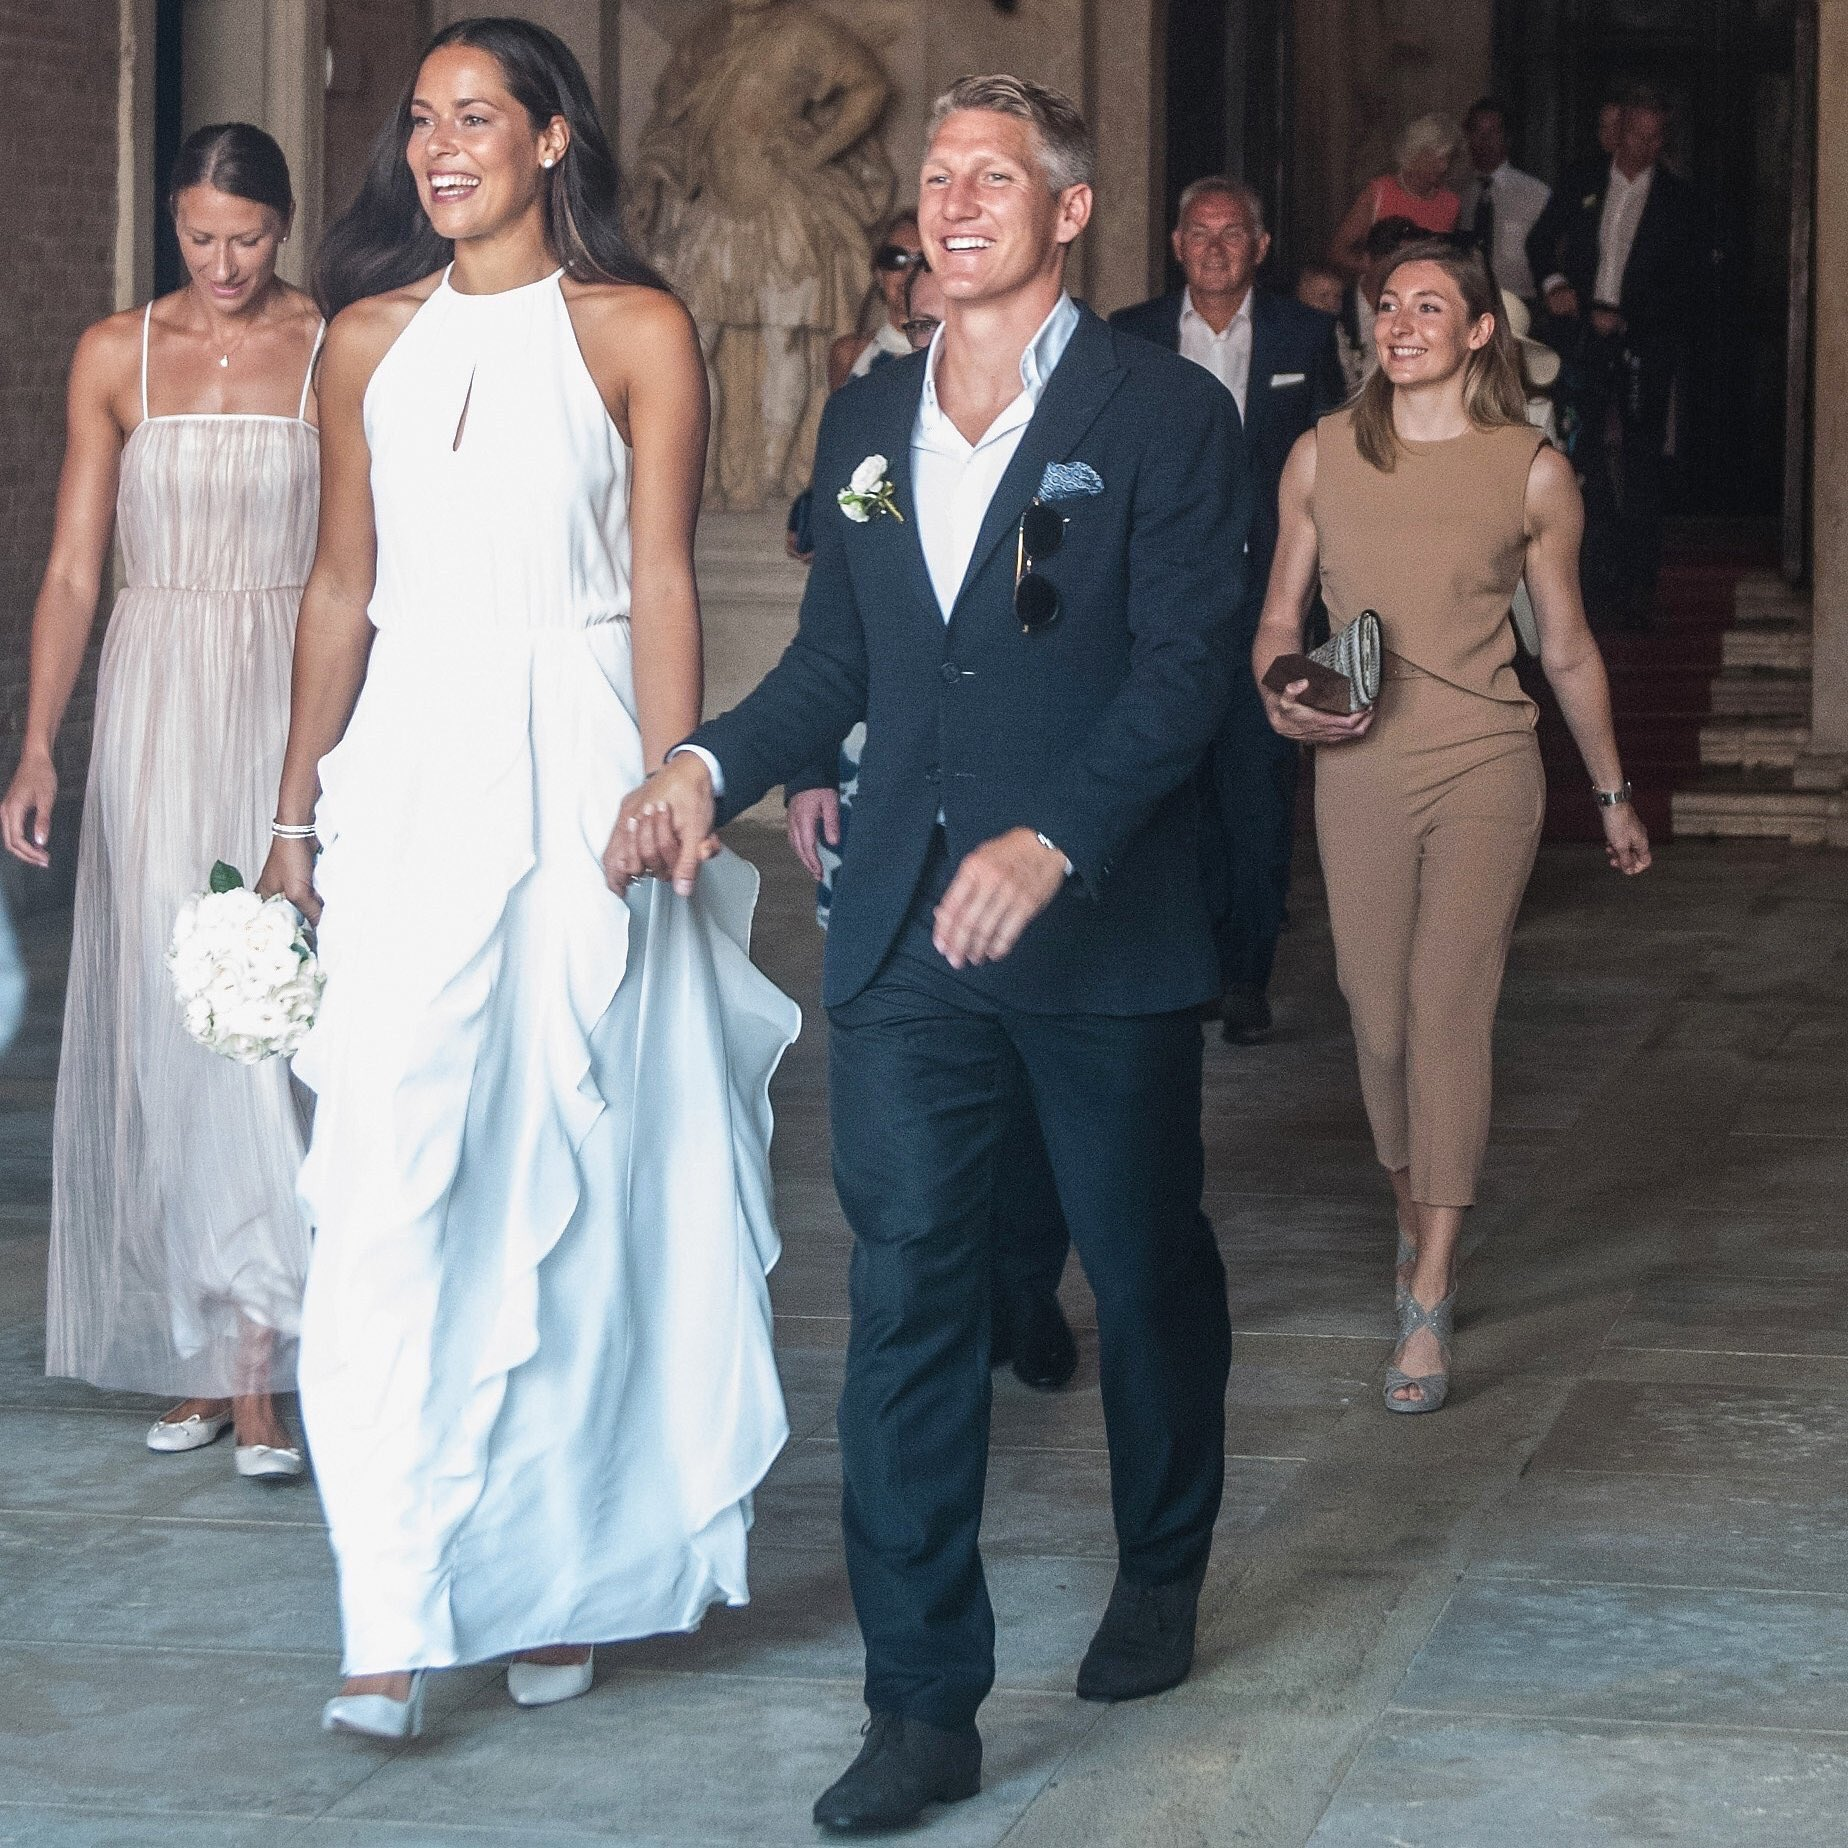 Schweinsteiger Marries Tennis Star Ivanovic